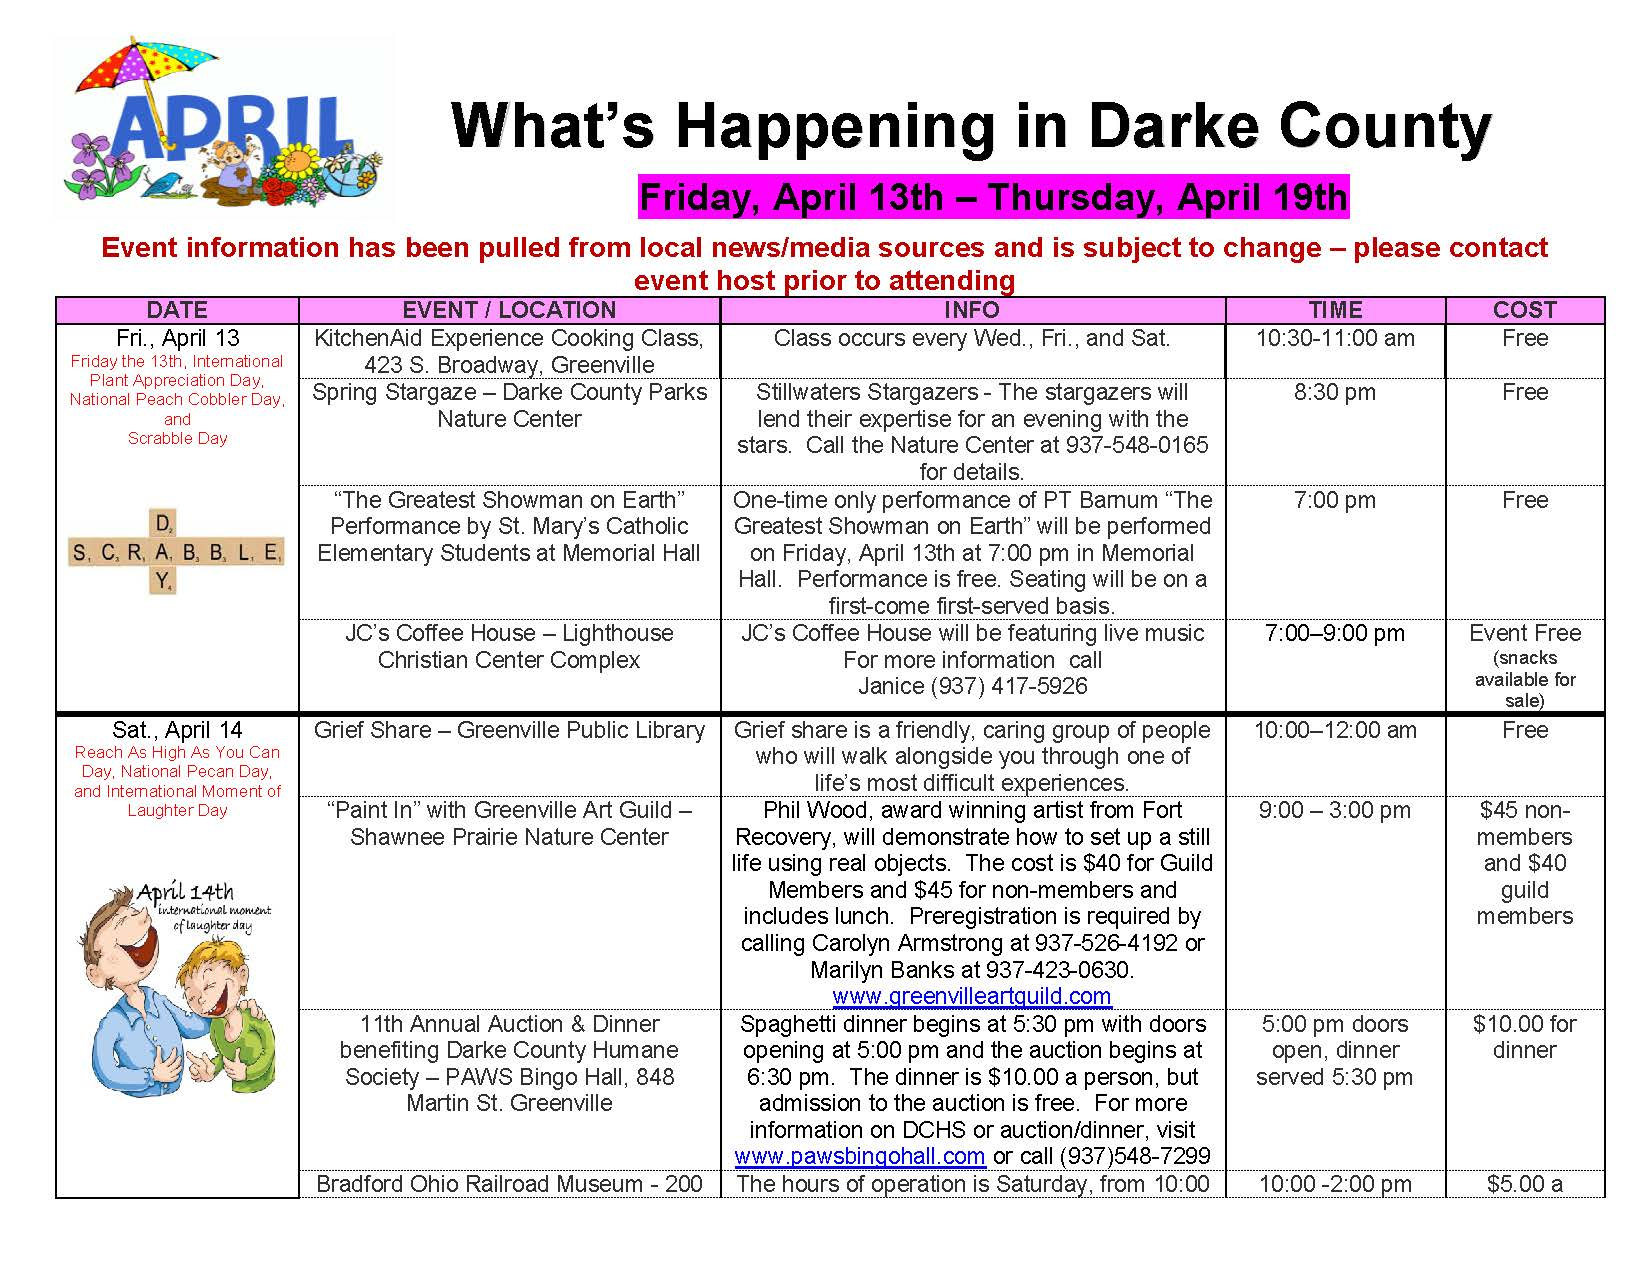 What's Happening in Darke County – 4/13 through 4/26